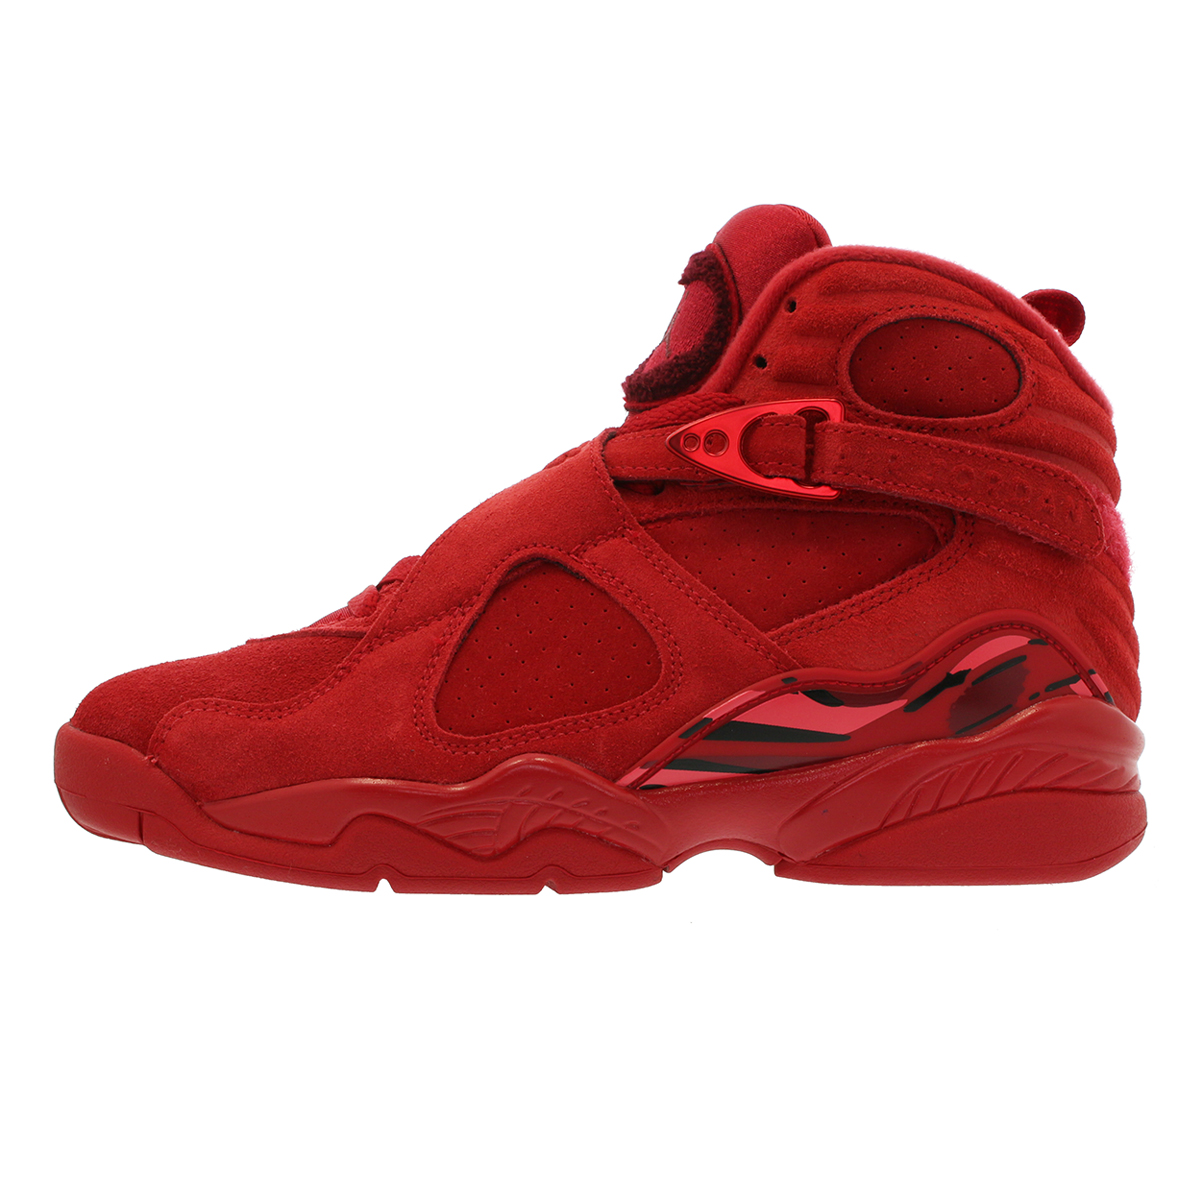 premium selection 8034a c6bc3 NIKE WMNS AIR JORDAN 8 RETRO VDAY Nike women Air Jordan 8 nostalgic GYM  RED/EMBER GLOW/TEAM RED aq2449-614